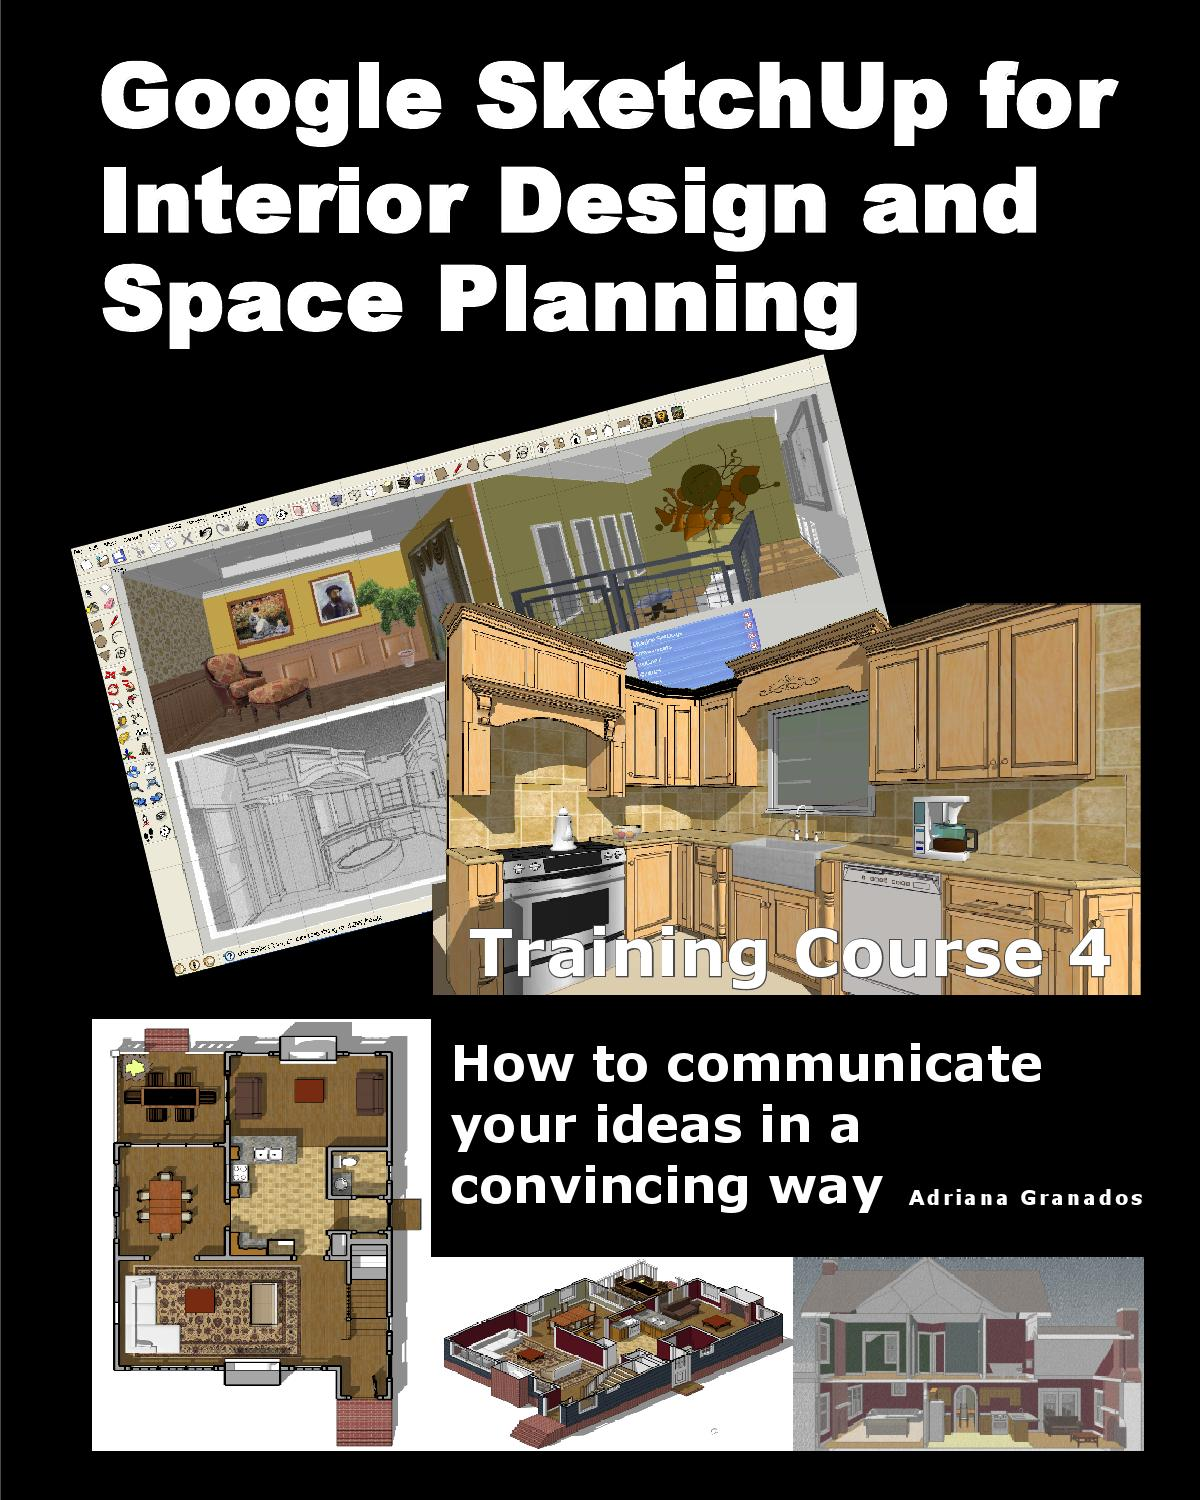 Google Sketchup For Interior Design And Space Planning Communicate Your Ideas In A Convincing